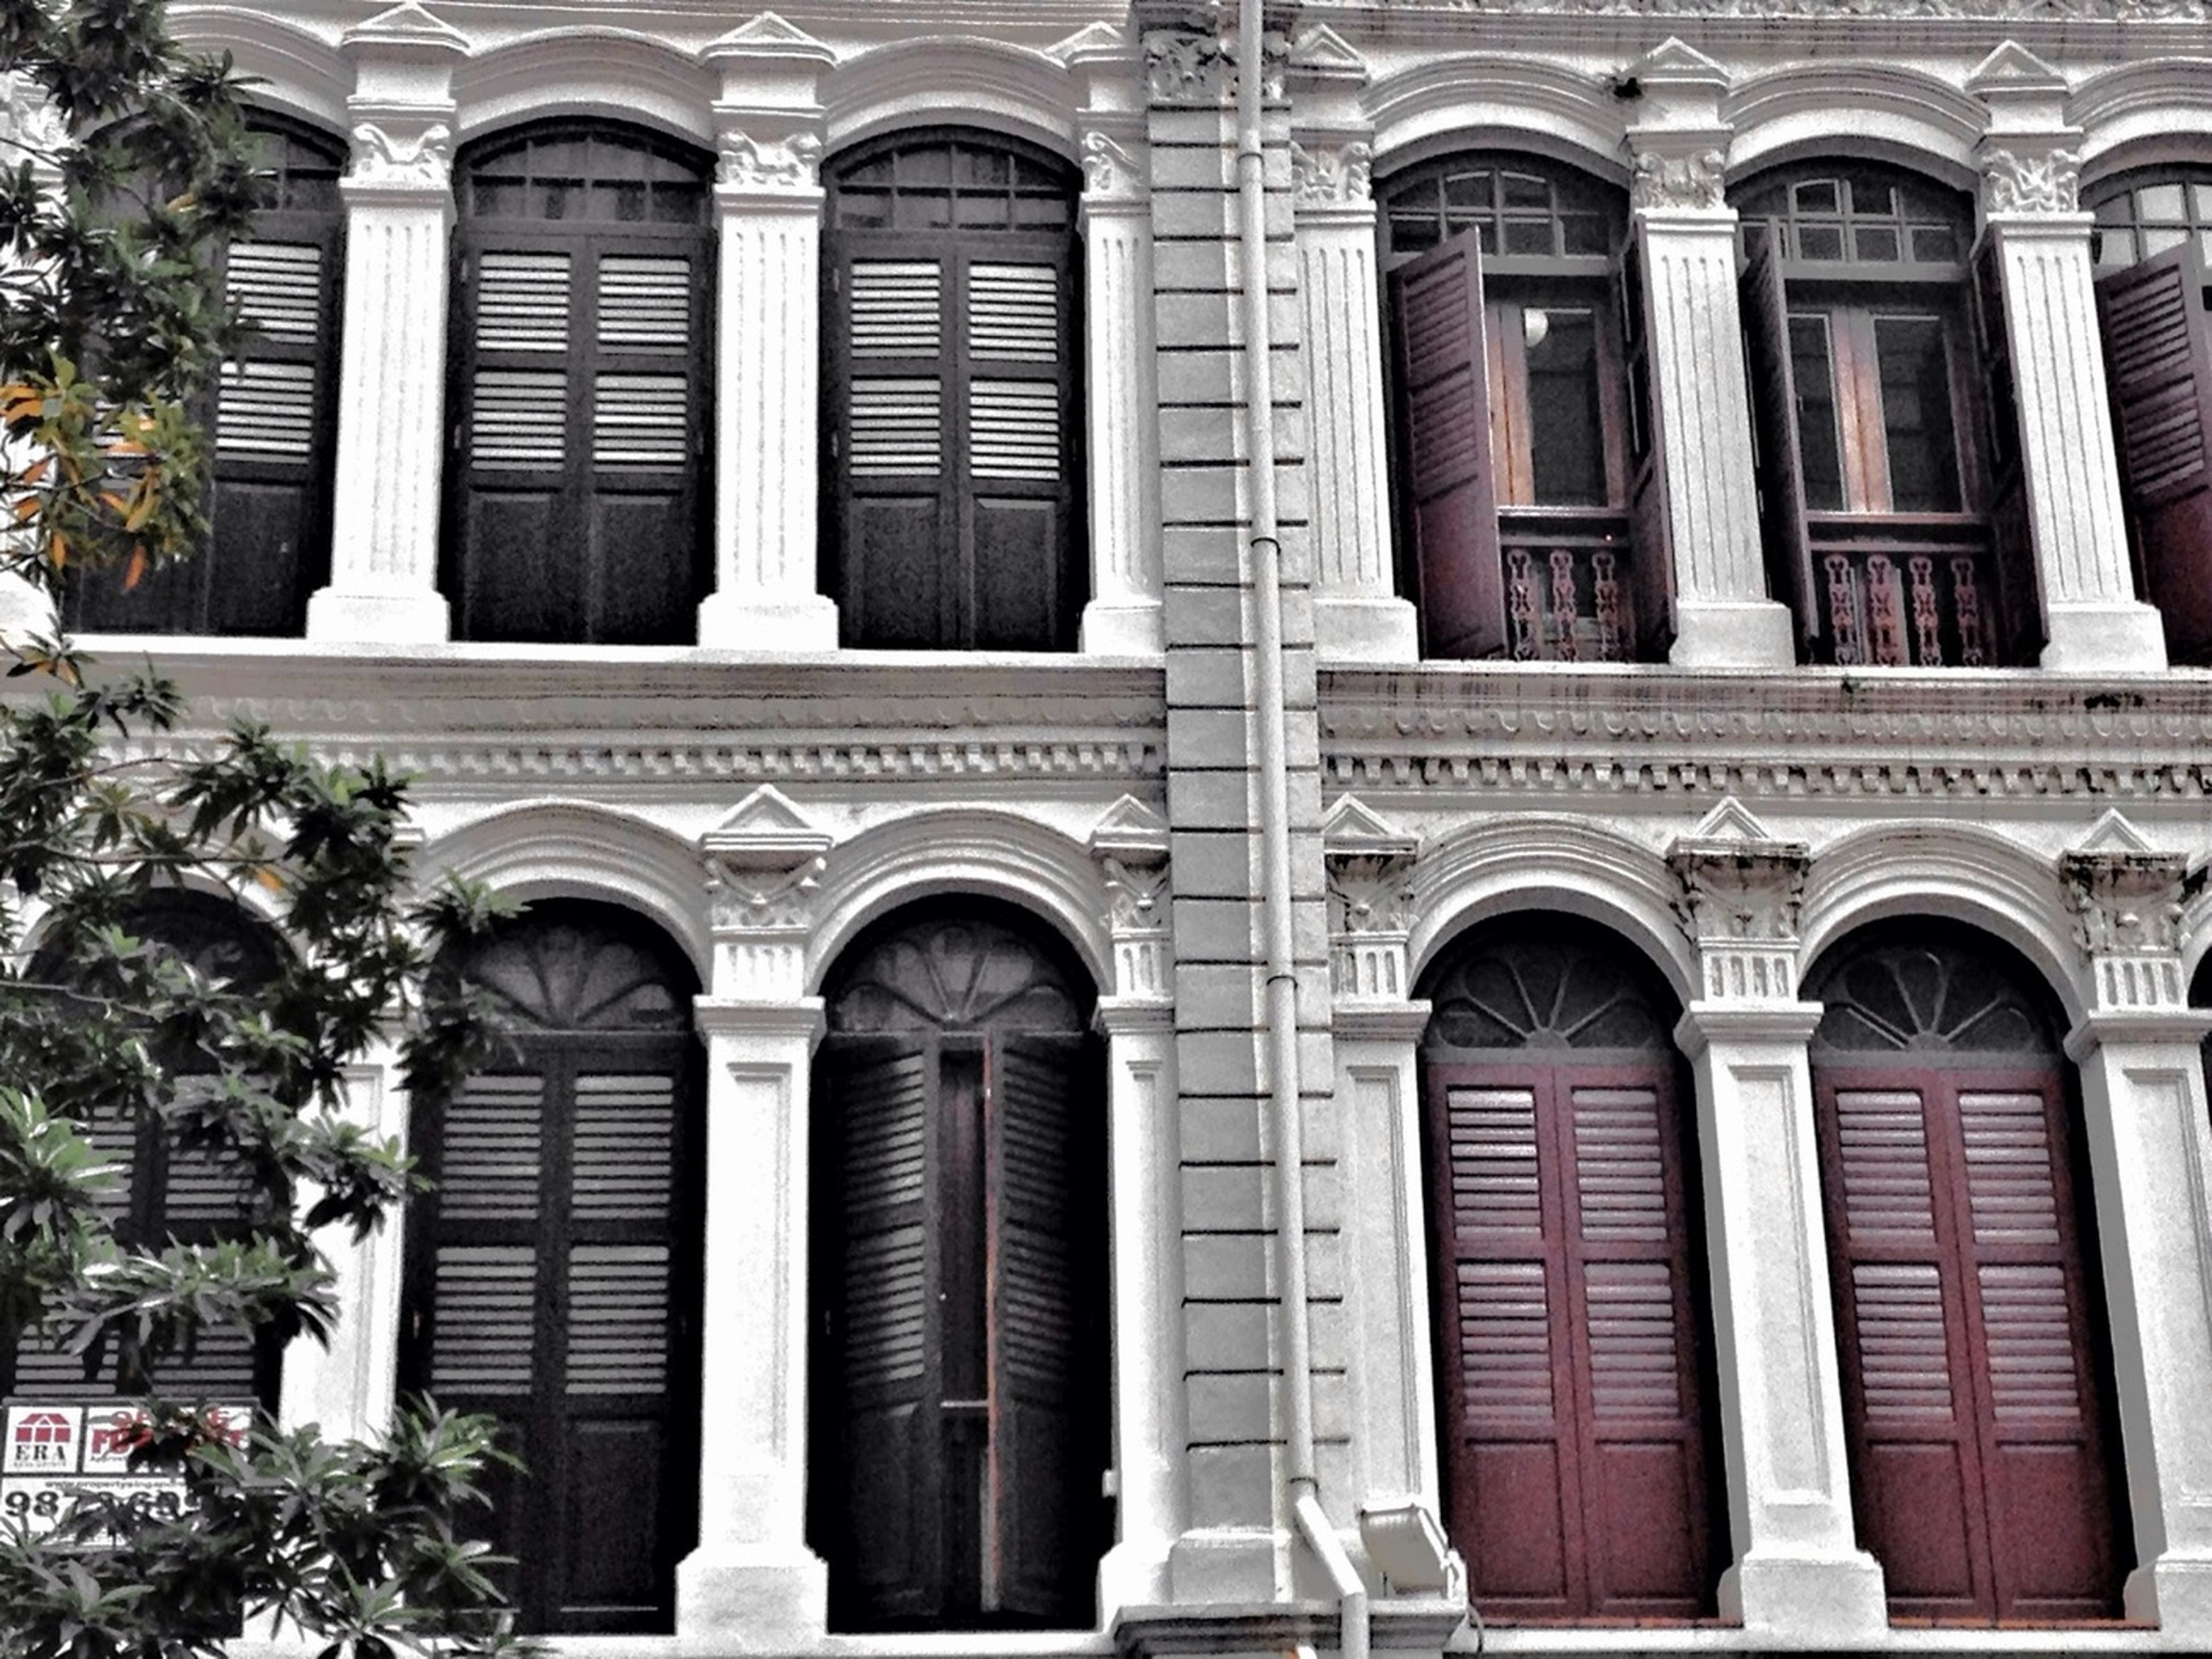 architecture, building exterior, built structure, window, arch, low angle view, facade, building, outdoors, day, old, residential building, balcony, no people, architectural column, door, entrance, in a row, history, repetition